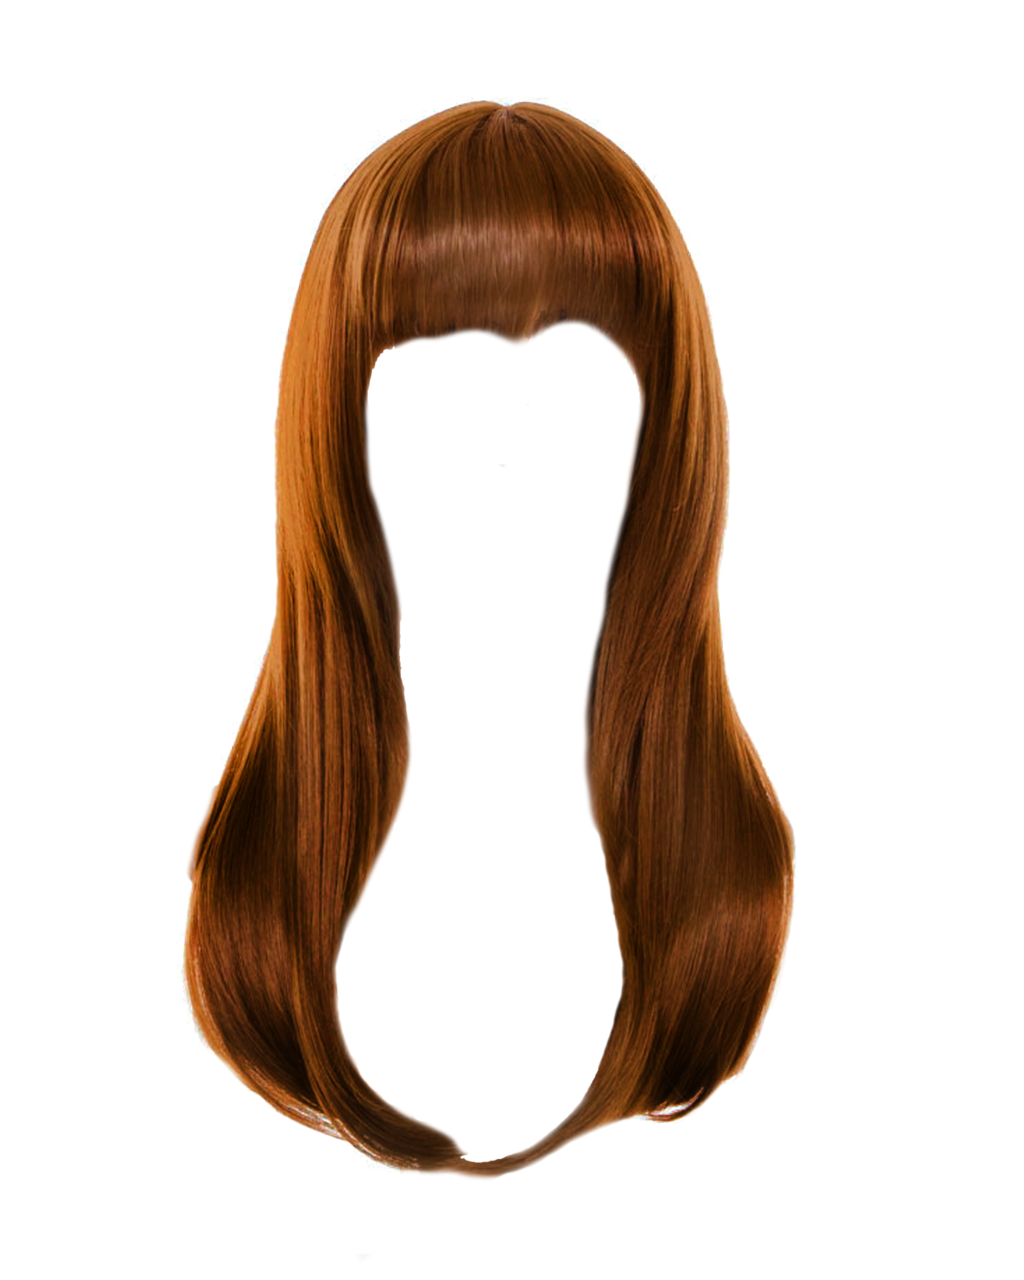 Download Png Image Women Hair Png Image Photoshop Hair Hair Png Womens Hairstyles